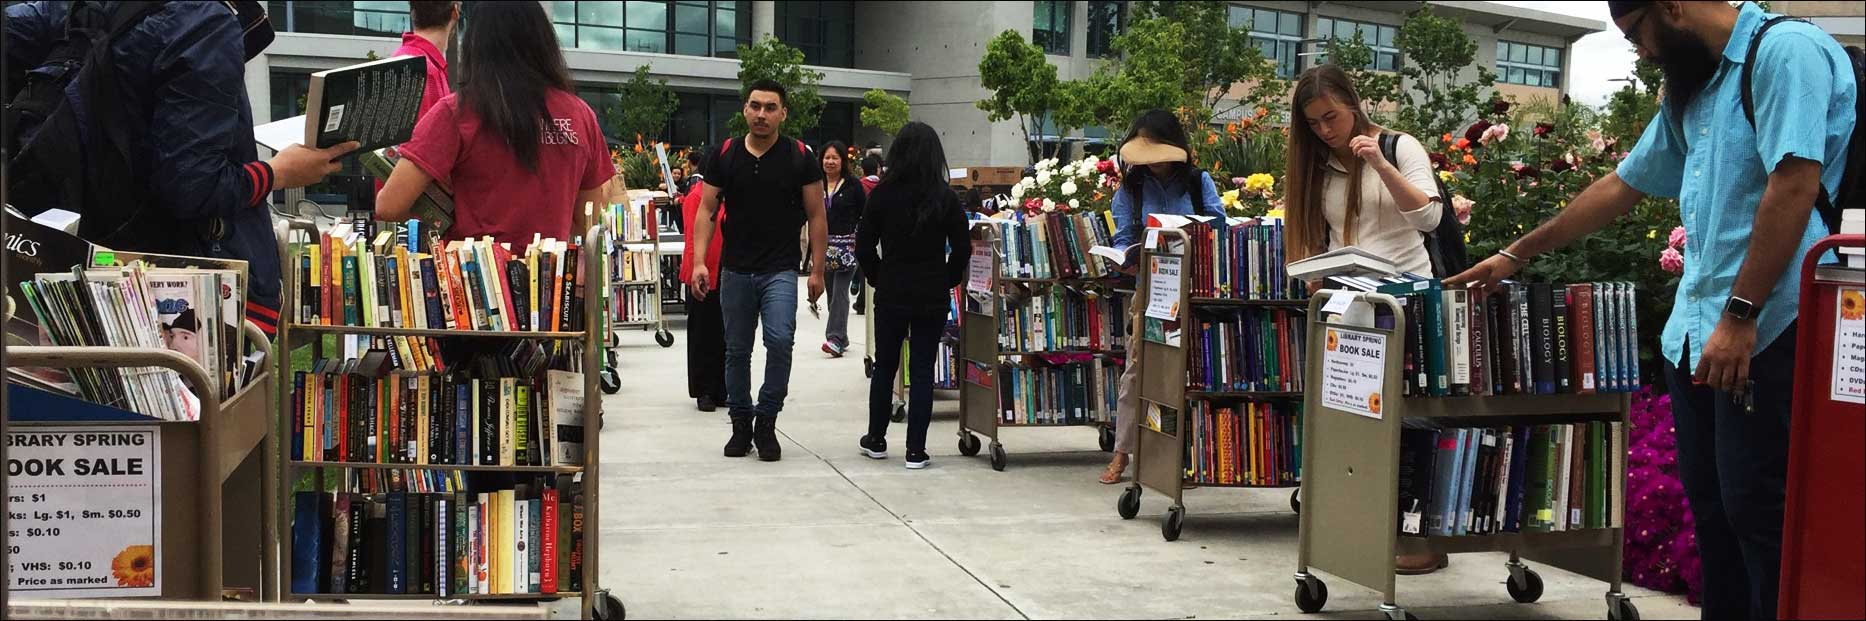 Library booksale